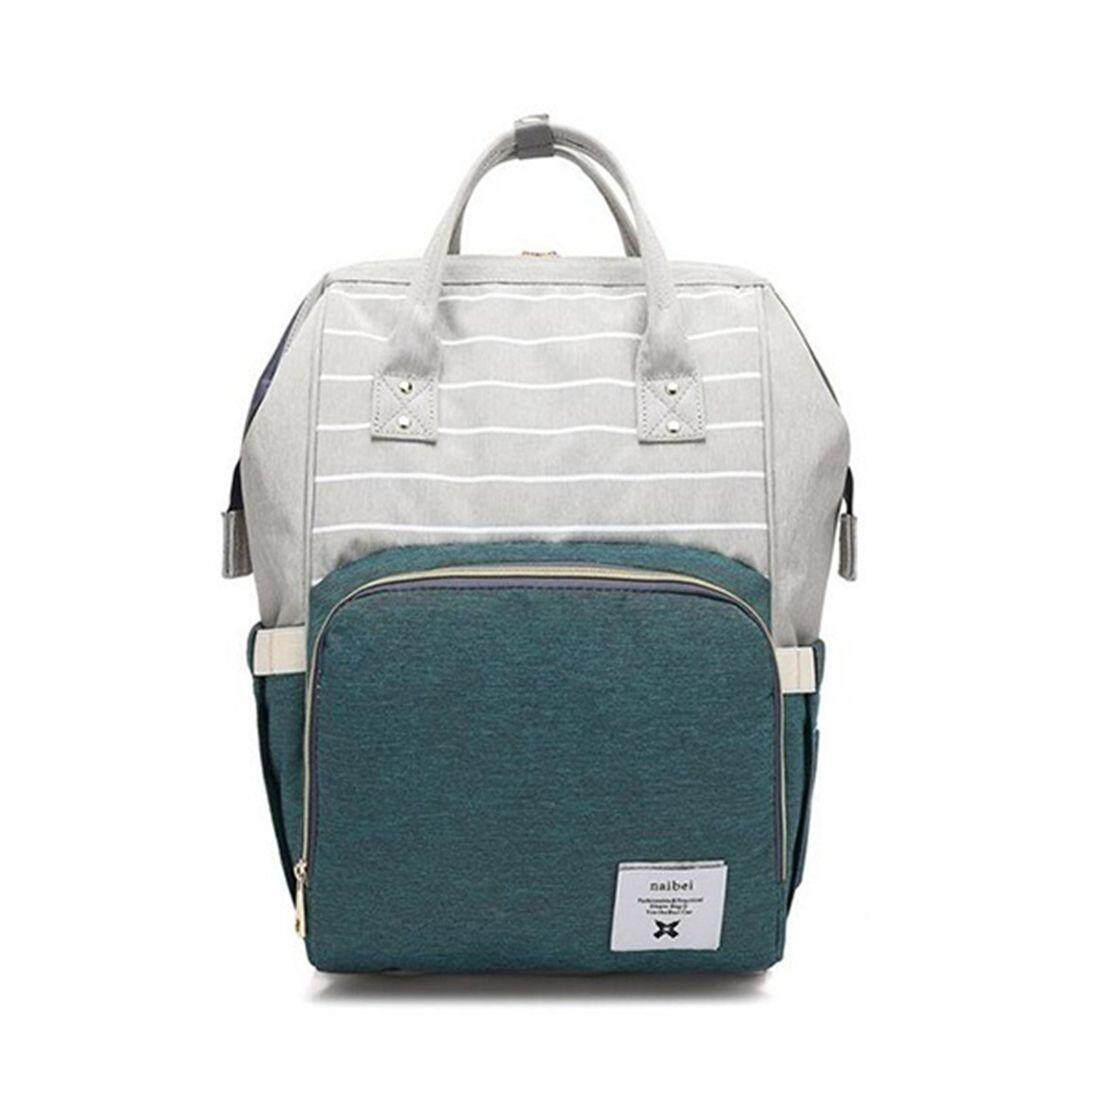 Green Fashion Diapers Large-capacity Multi-function Care Bag Children Travel Striped Backpack Baby Diaper Bag Feeding Bottle Treasure Mother Out Backpack Waterproof Trolley Bag หาซื้อได้ที่ไหน